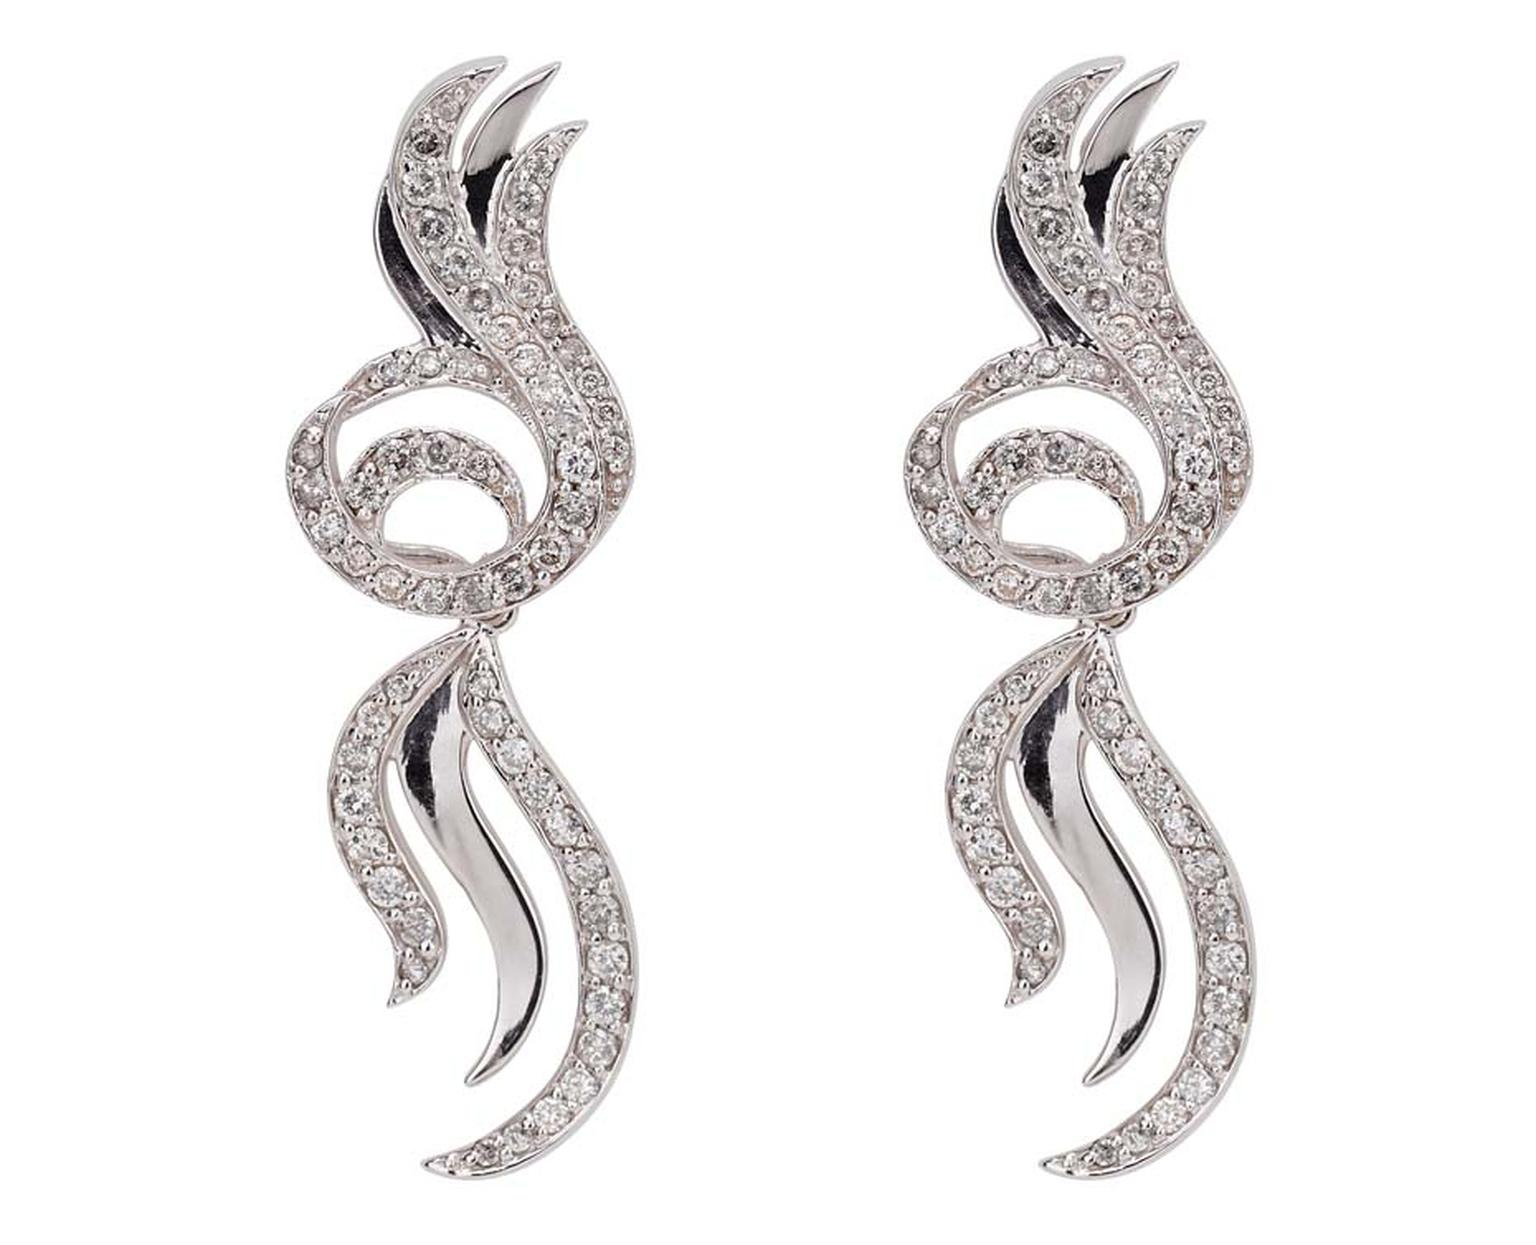 Deborah Pagani gold and grey diamond detachable earrings, available at Latest Revival.